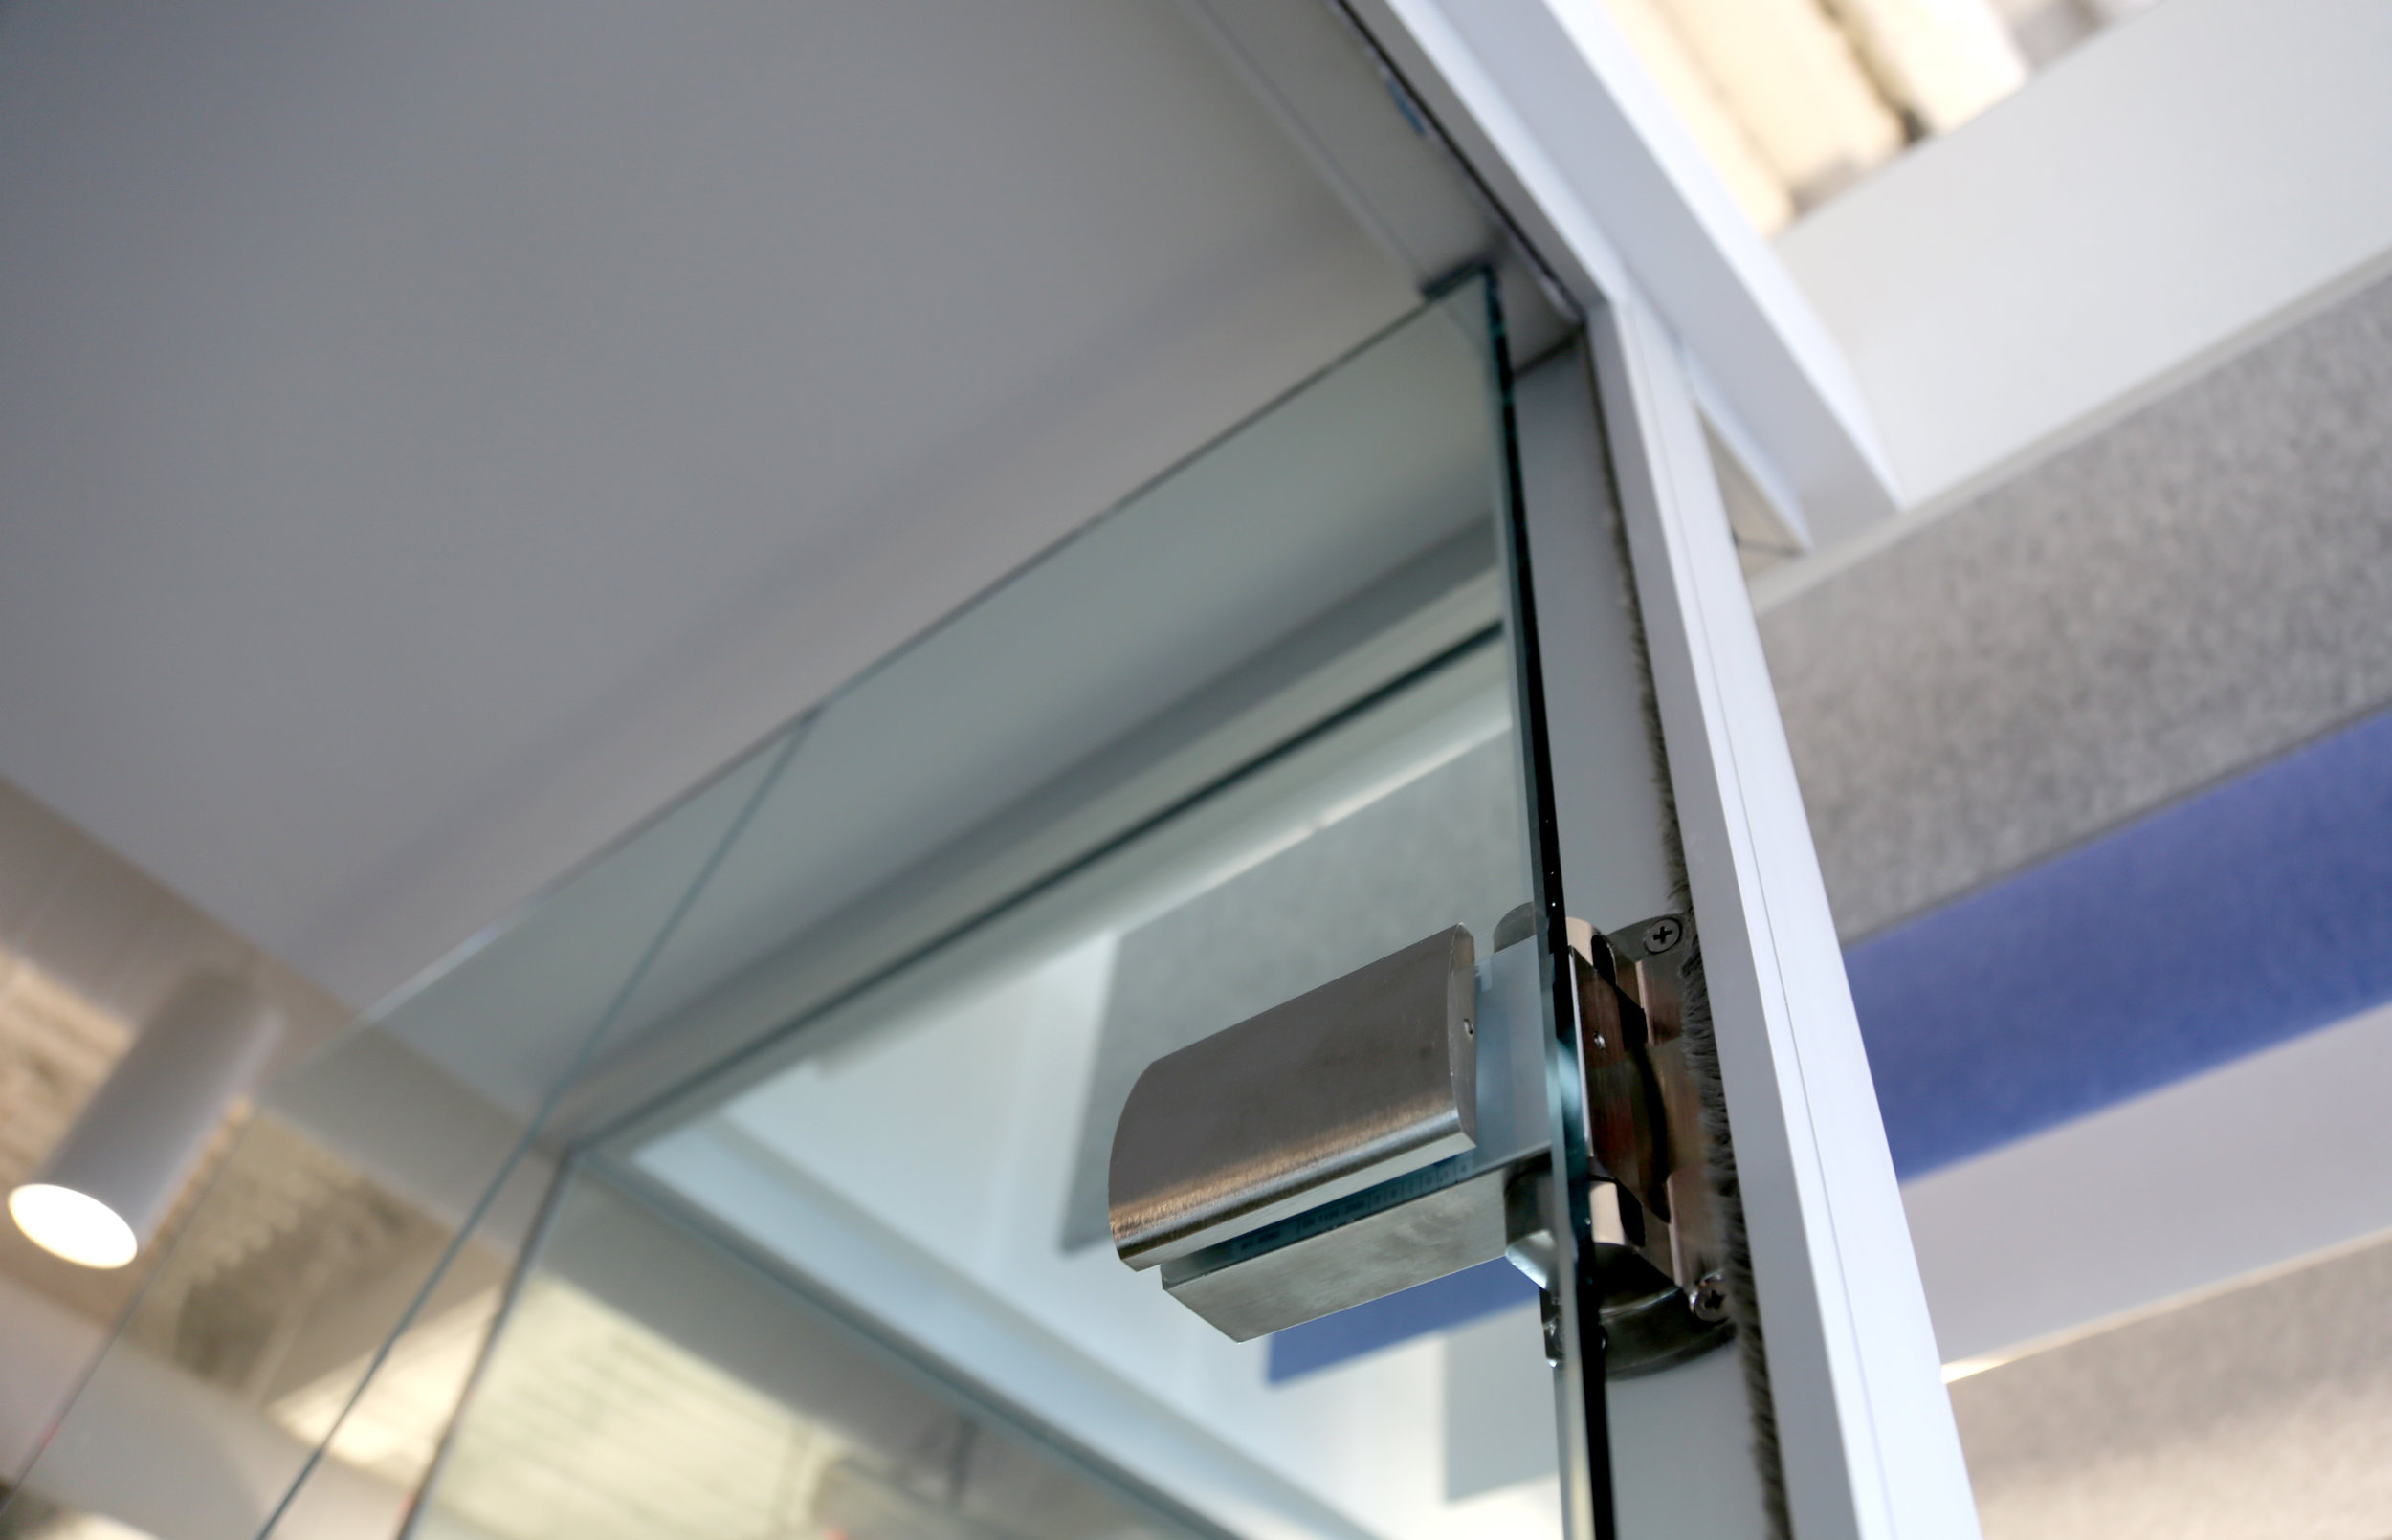 Litespace Clear Anodized Demountable Glass Door Hydraulic Hinge - Spaceworks AI.jpg